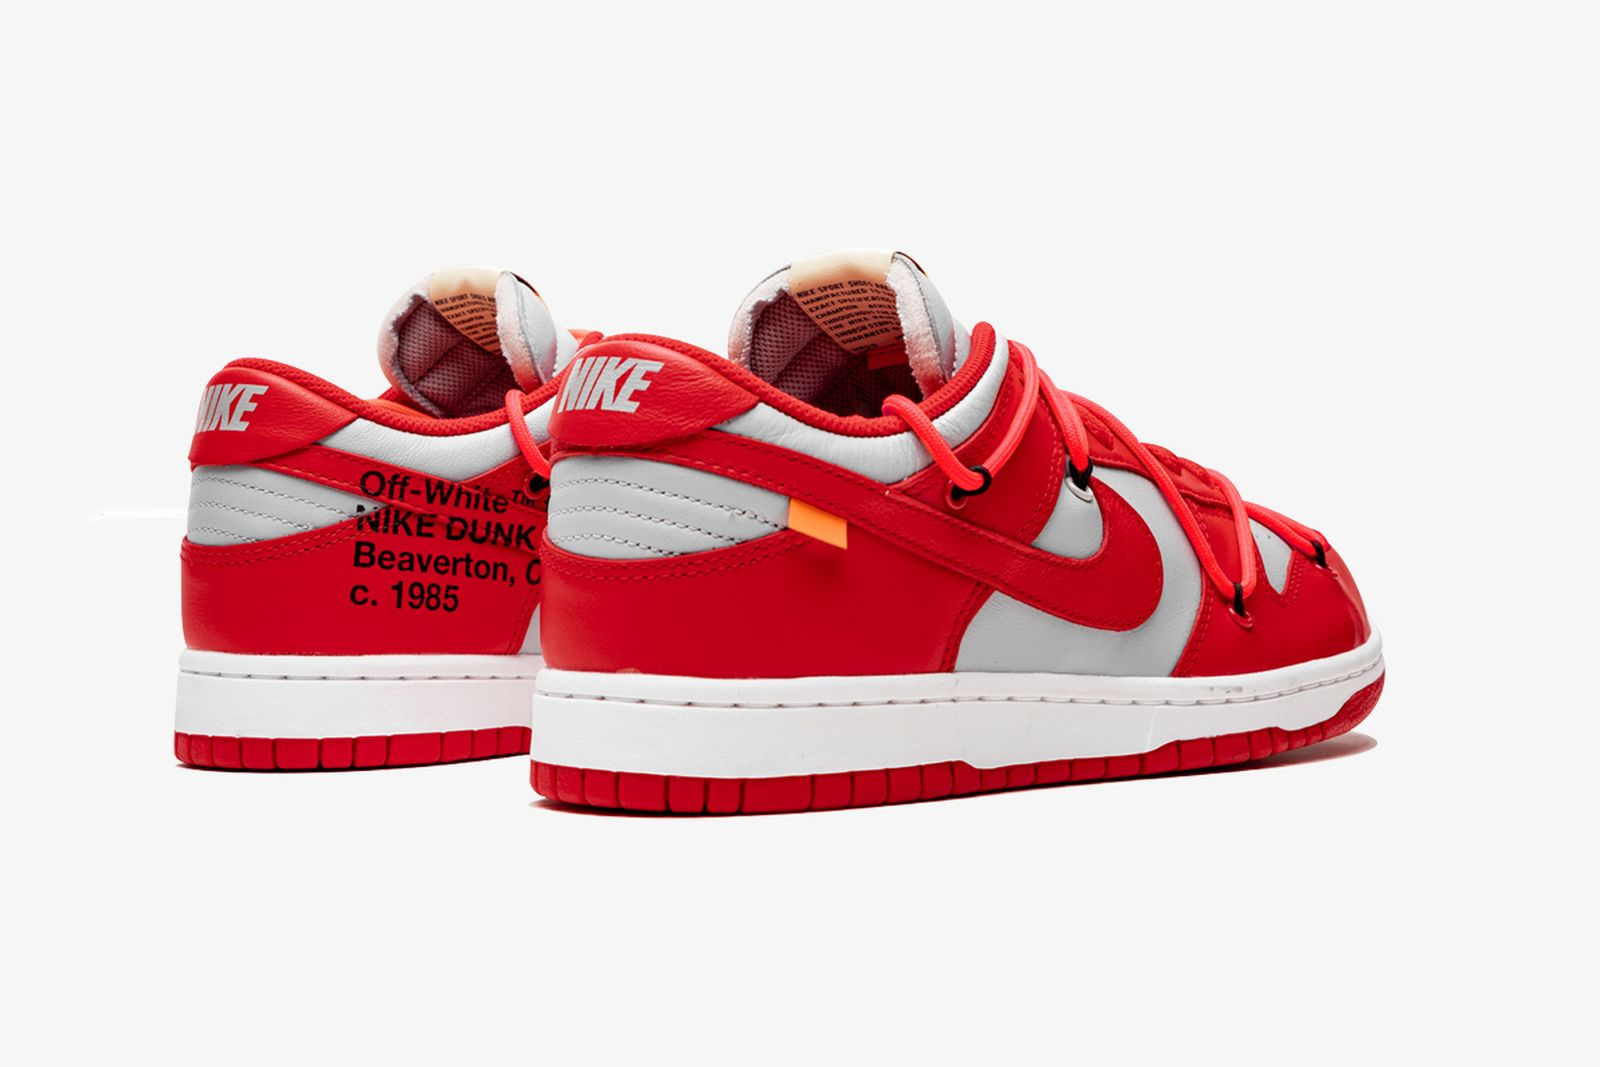 off-white-nike-dunk-low-university-red-release-date-price-02